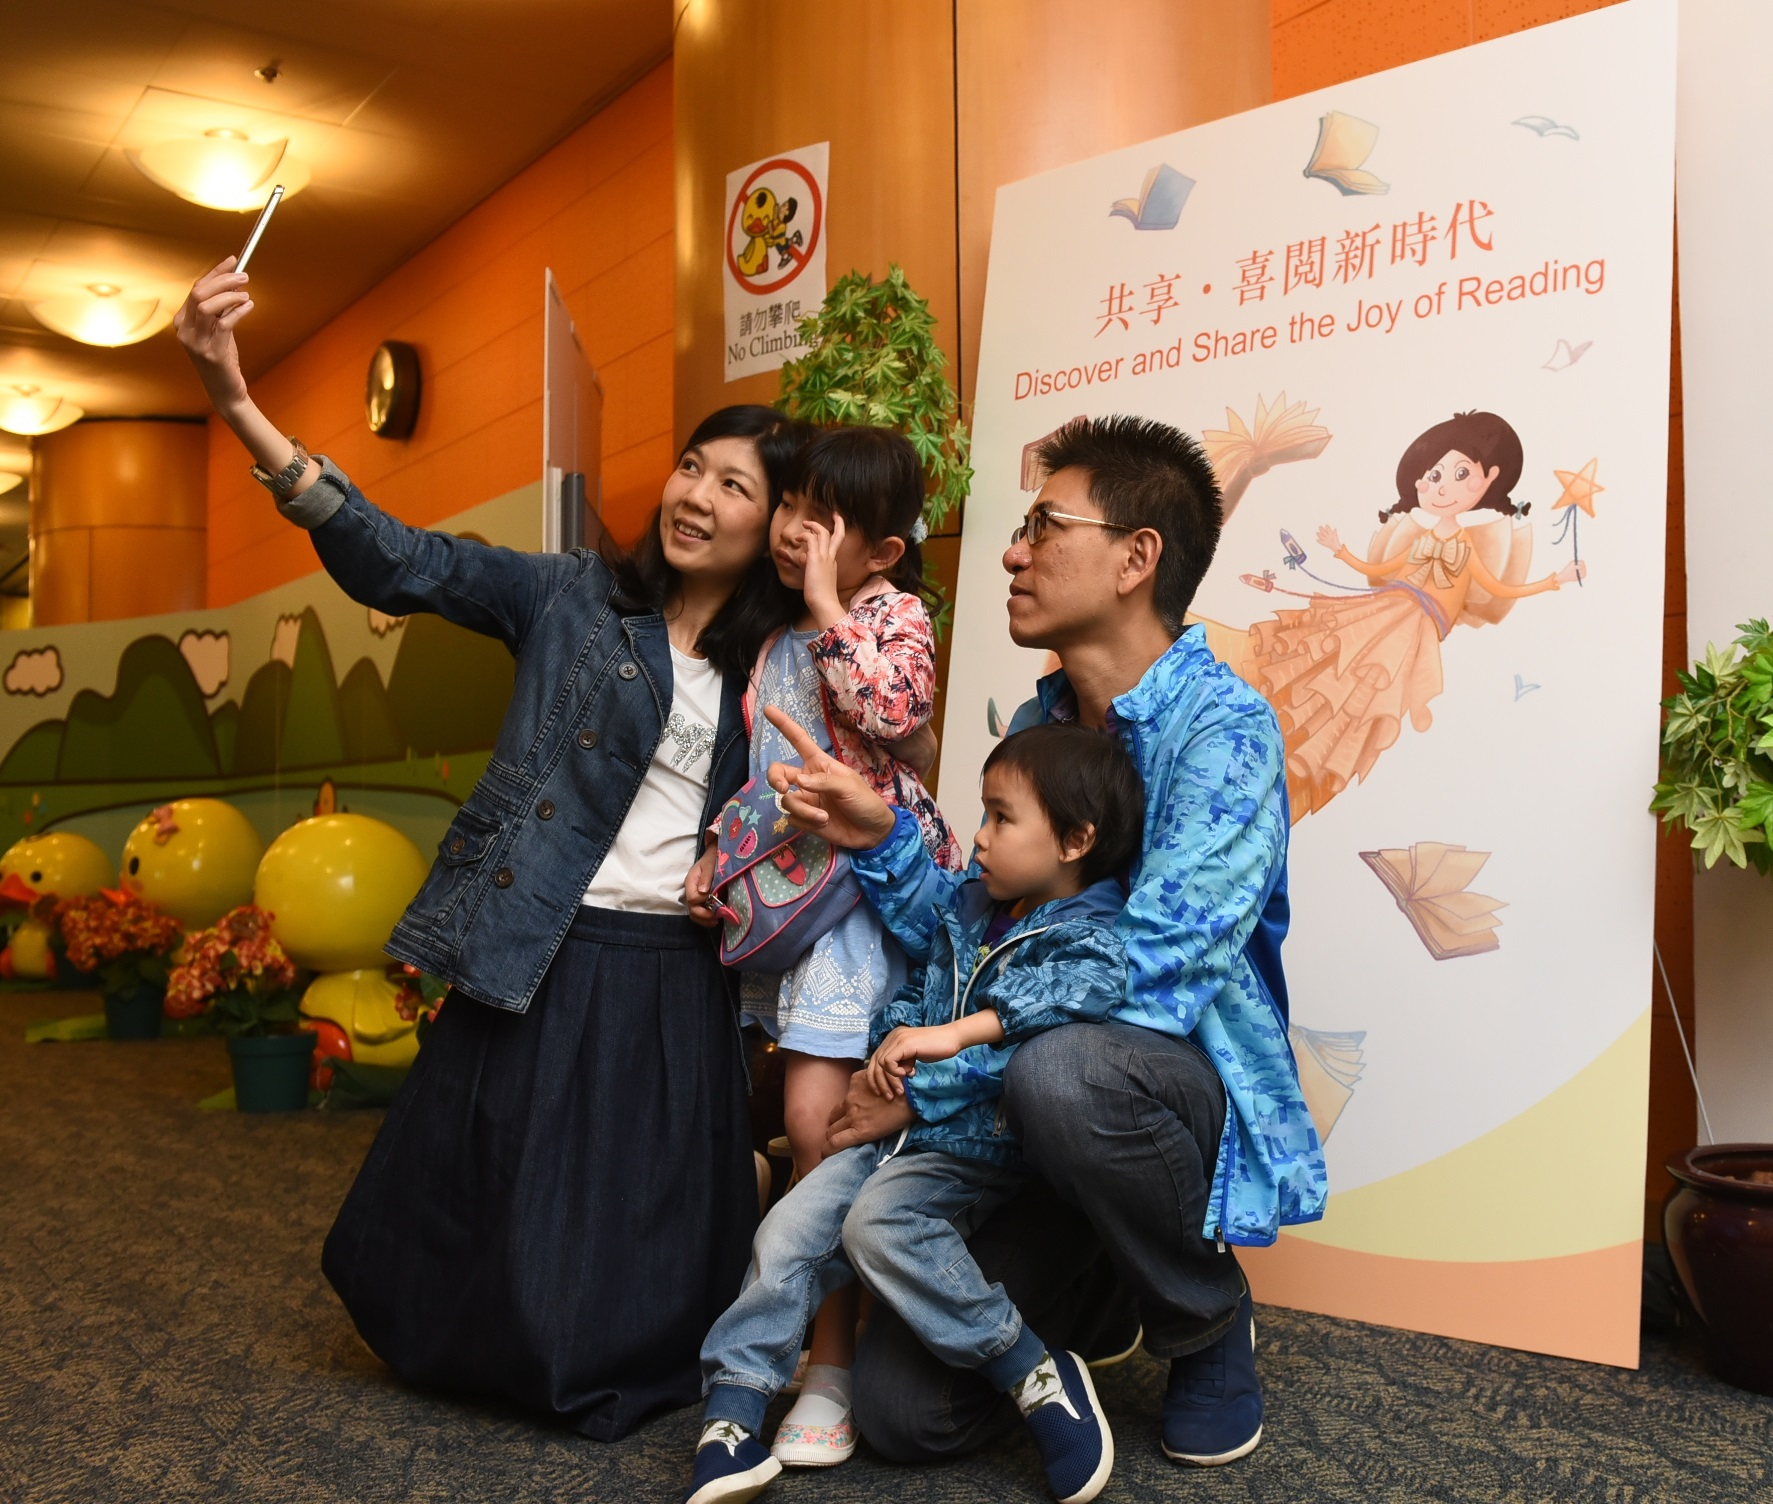 A family selfie with the 'Joy of Reading' Mascot